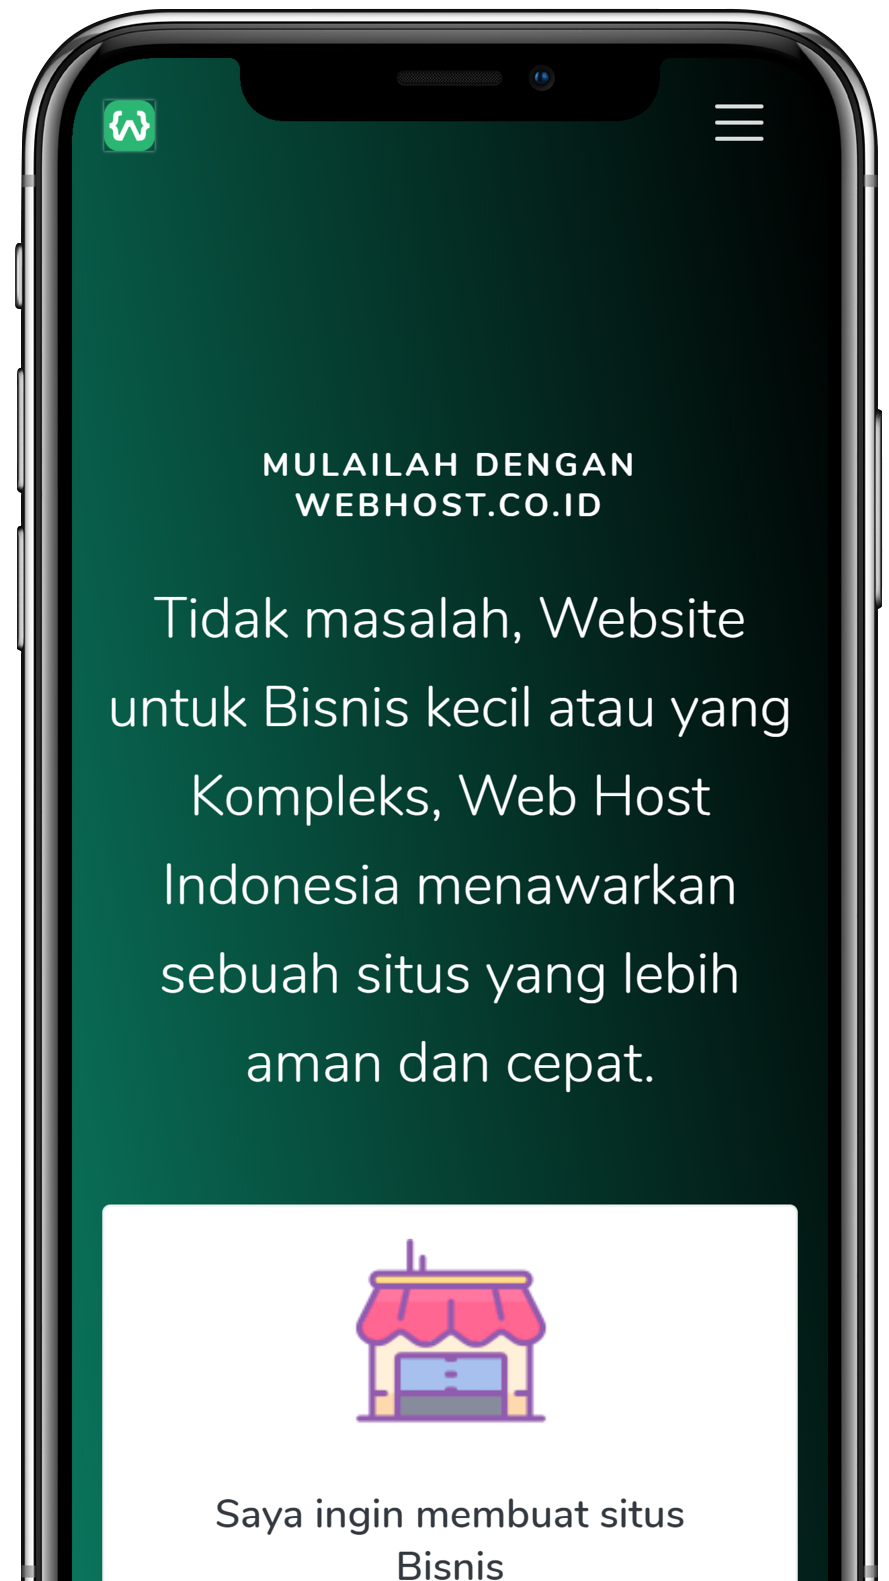 Web Host Indonesia